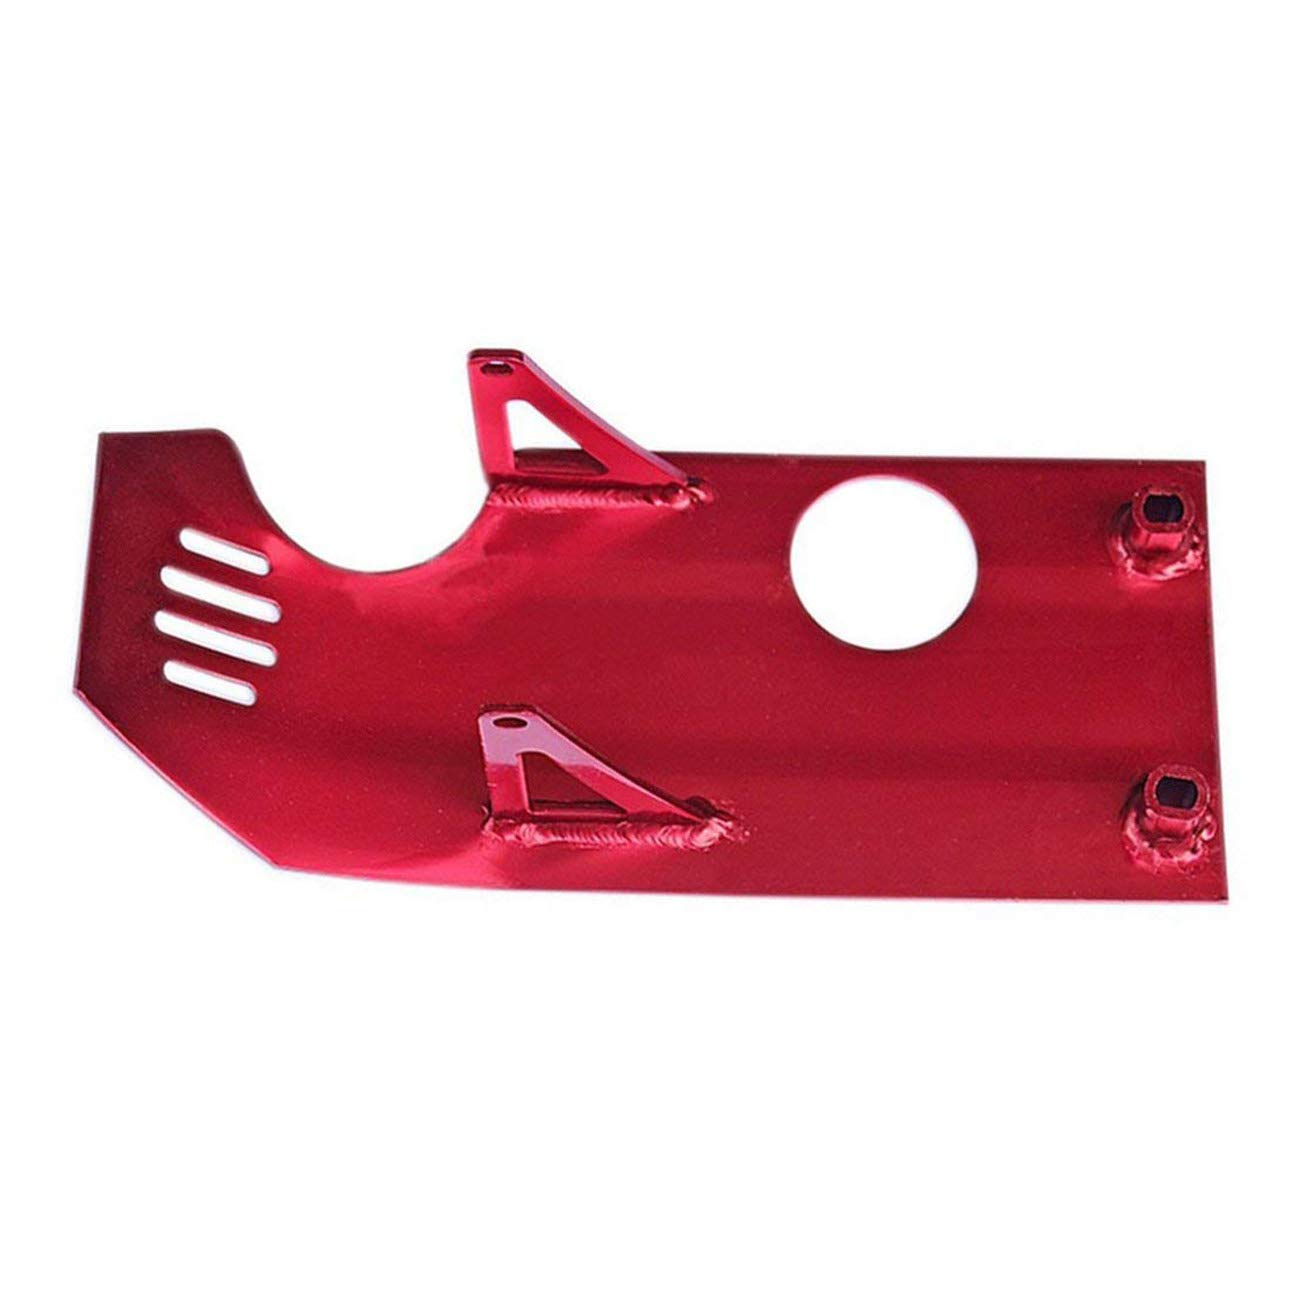 ZXTDR Skid Plate Guard Protector for Honda XR50 CRF50 XR 50 CRF SP07 Pit Dirt Bike 70cc 110cc 125cc (Red)